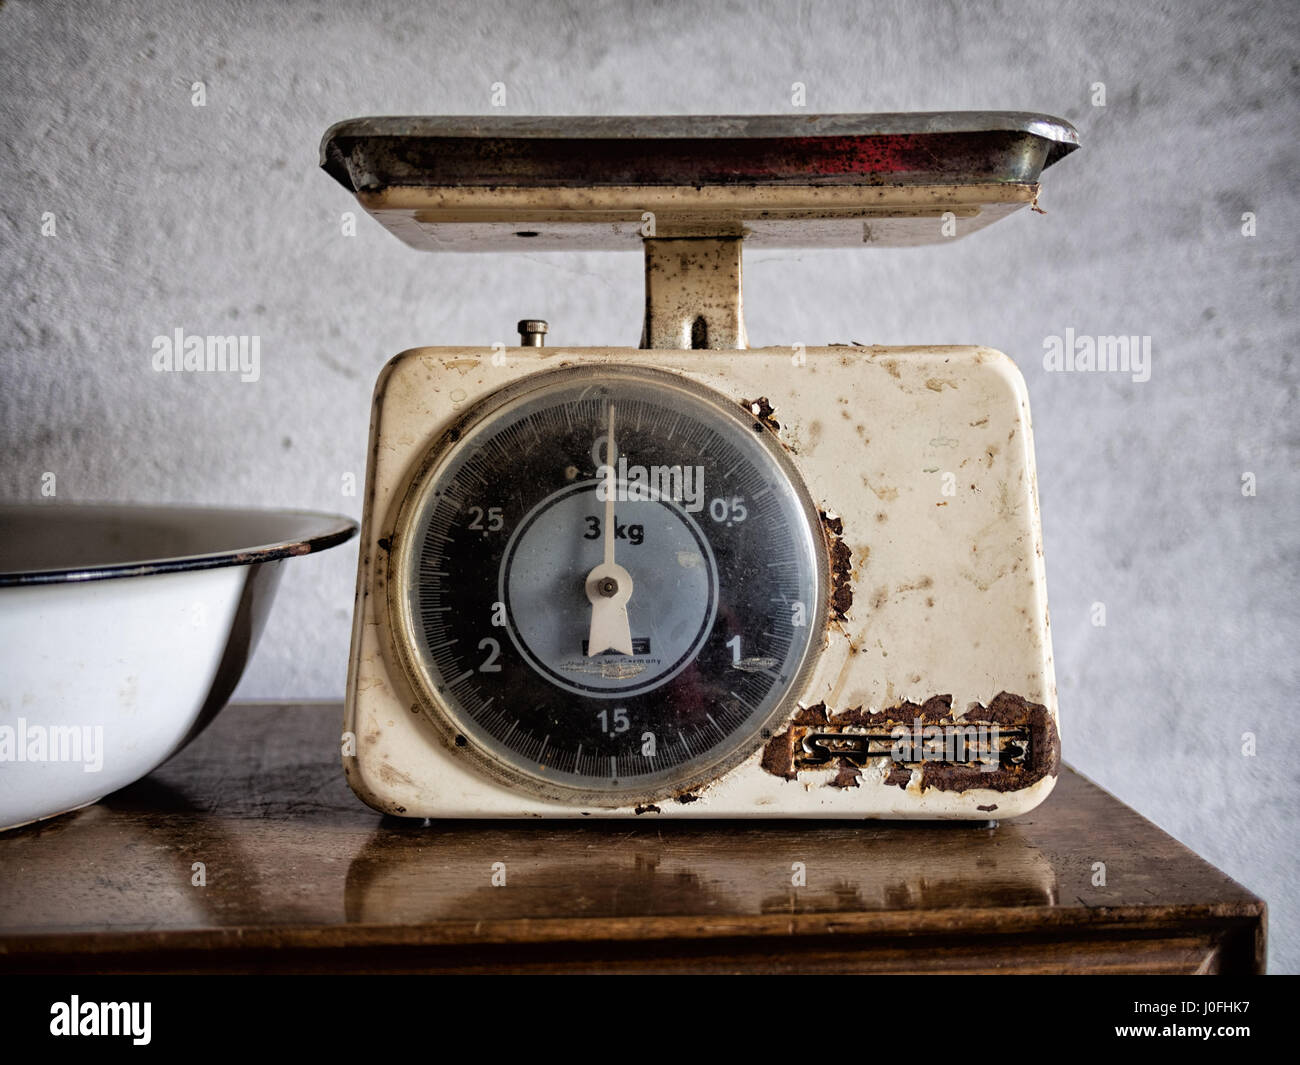 Vintage Stube Kitchen Scales. Retro And Rusty.   Stock Image